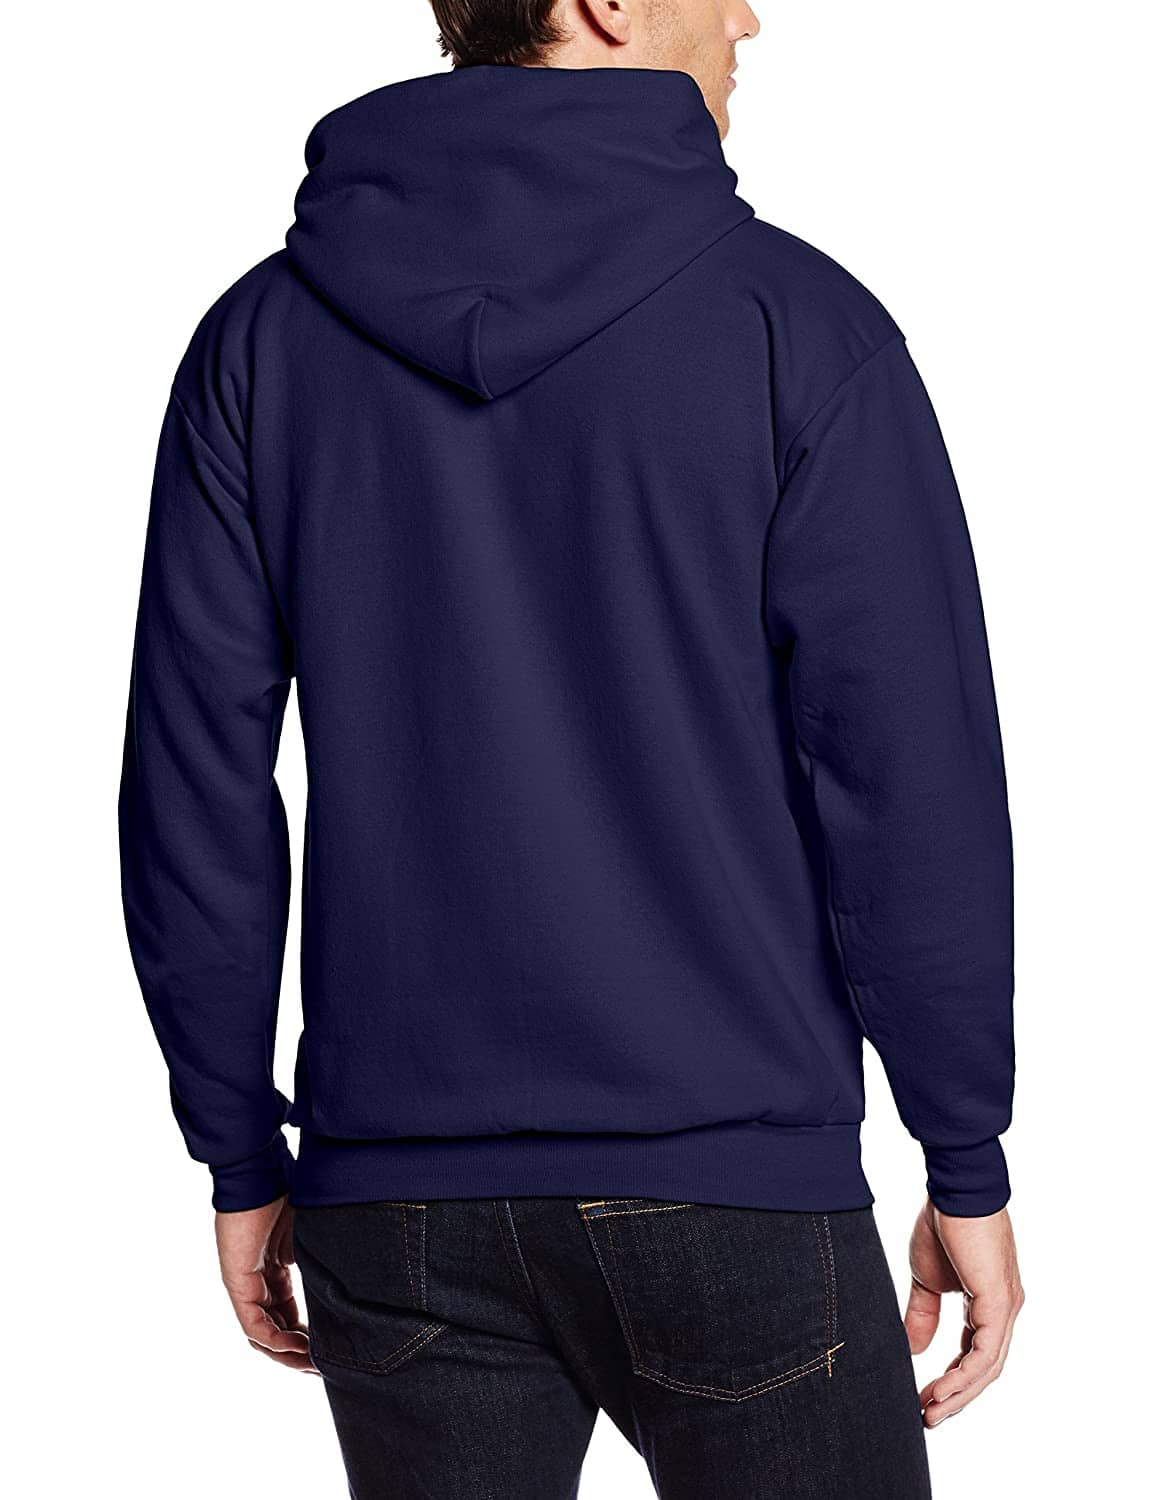 Hanes Men's Pullover Ecosmart Fleece Hooded Sweatshirt (Navy) $7.50 + Free Shipping w/ Prime or $25+